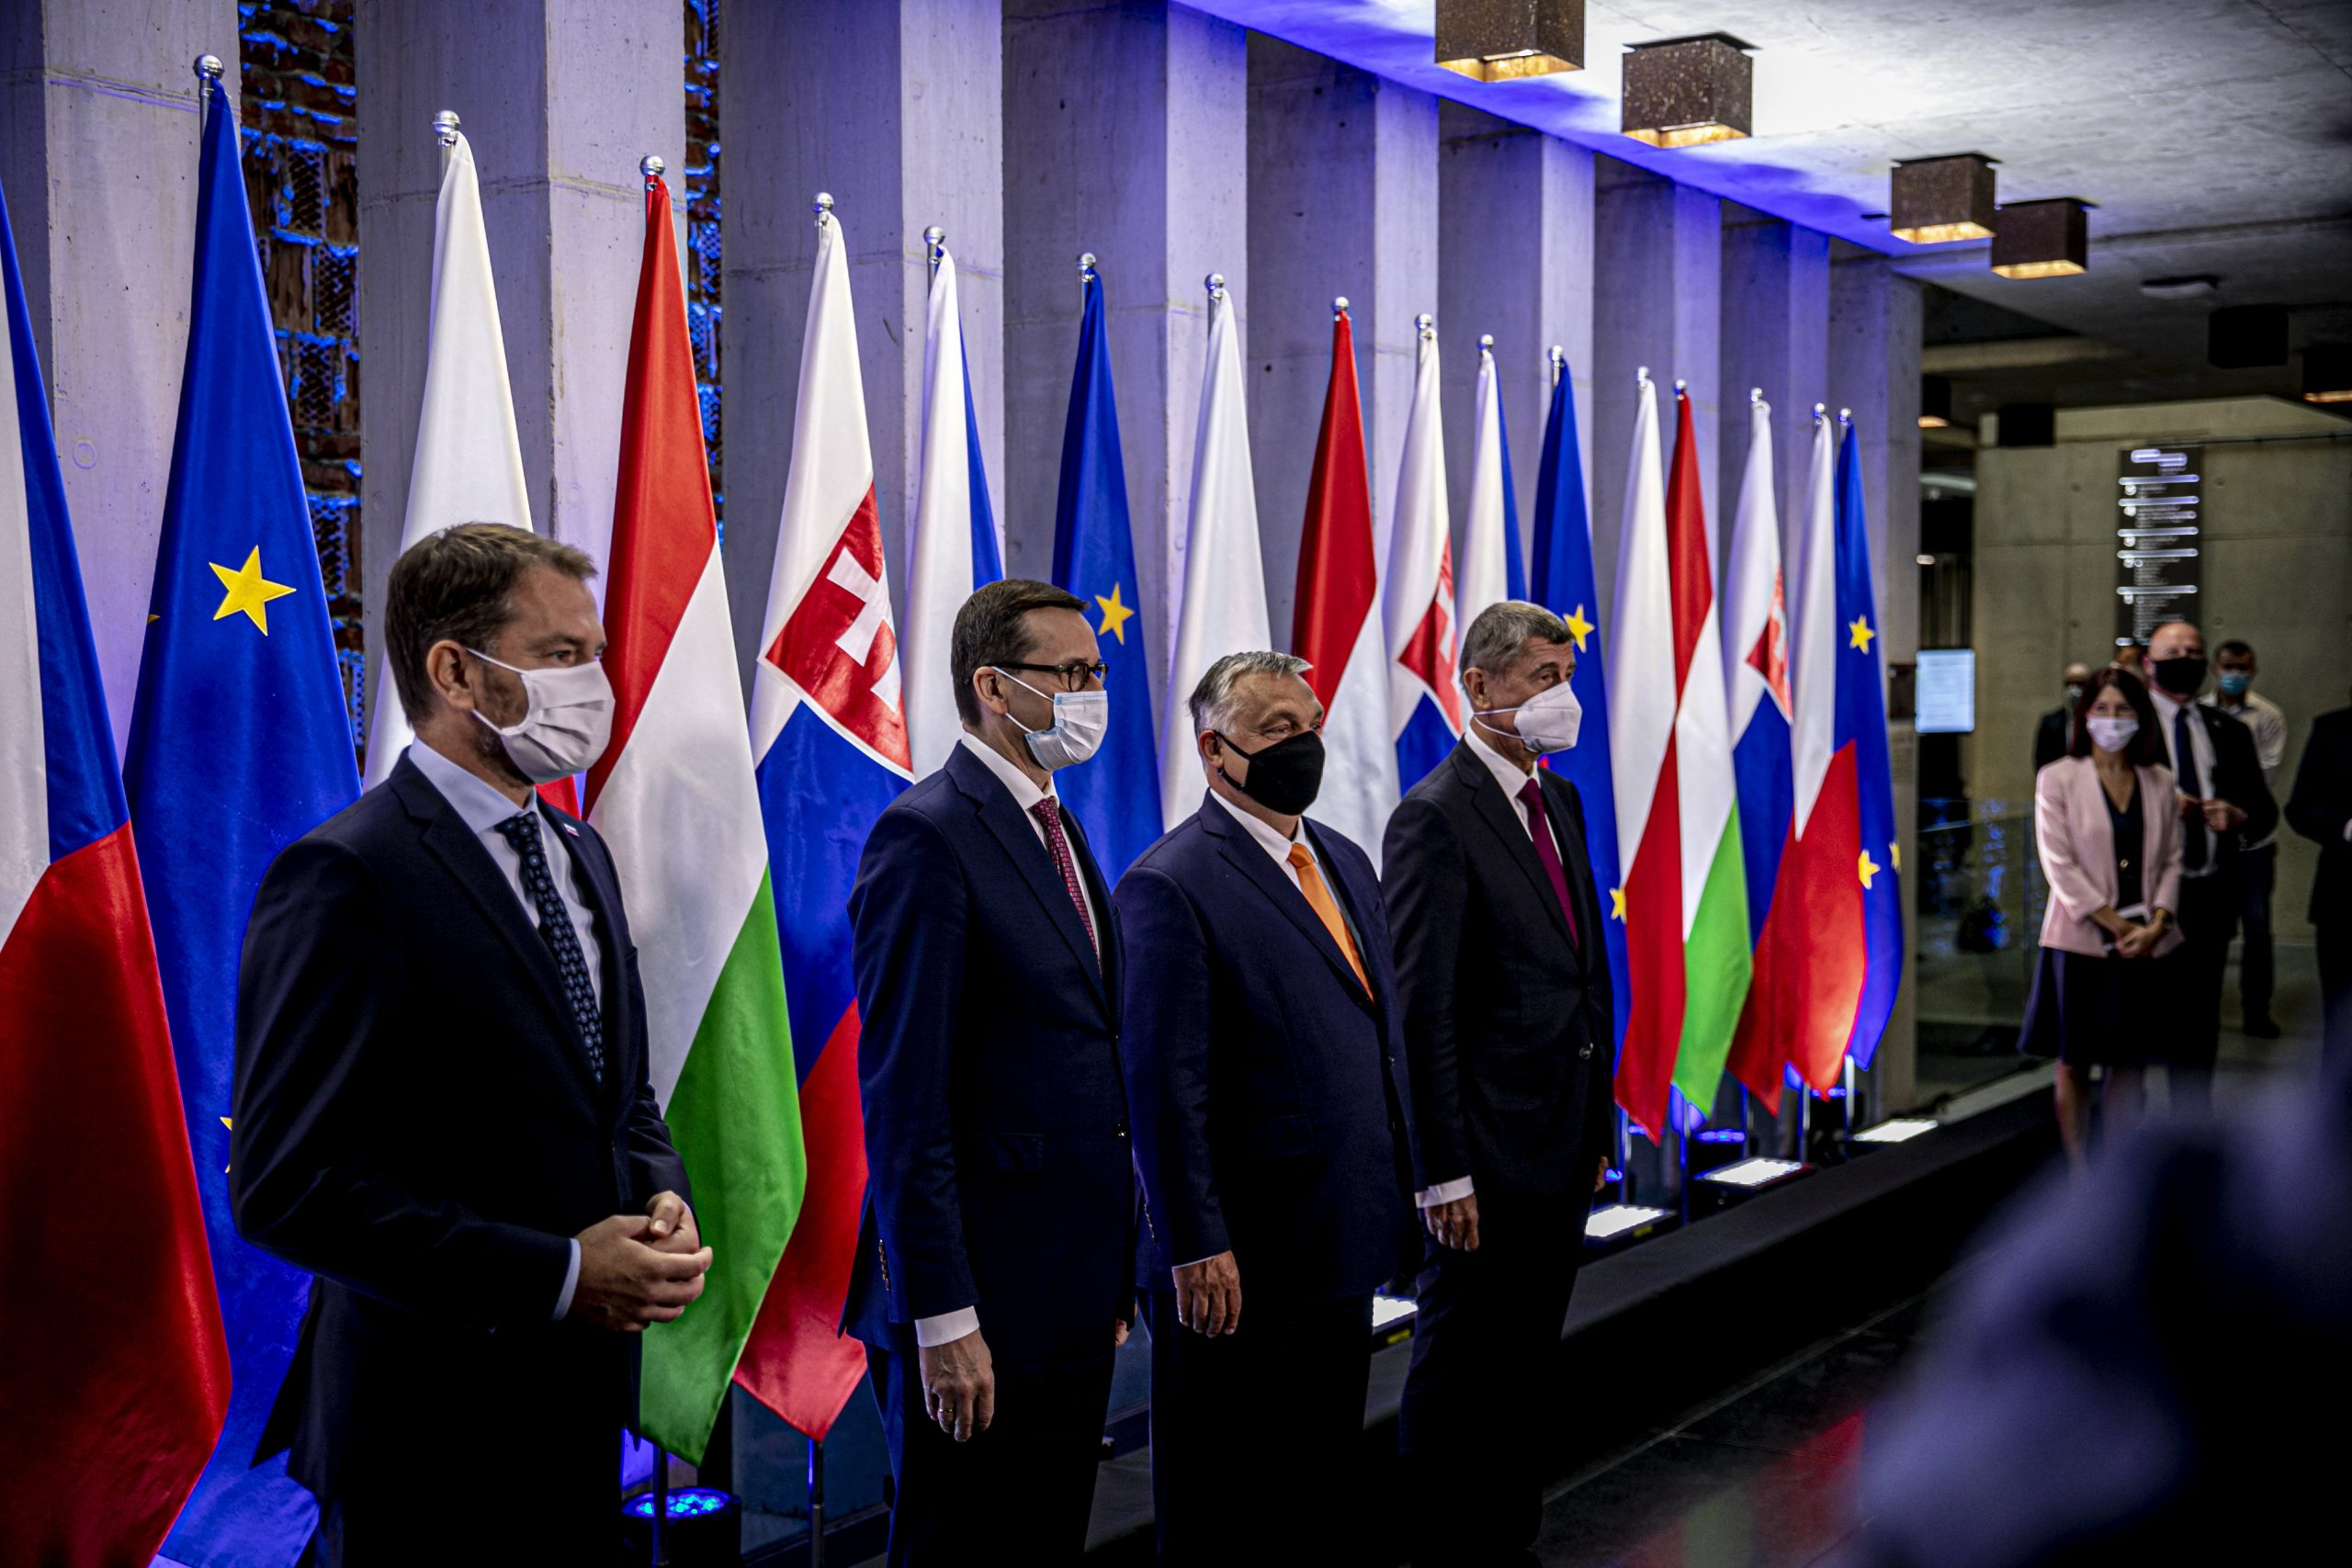 Fidesz Lawmaker: V4 to Fight Jointly for Post-Pandemic Position in Europe